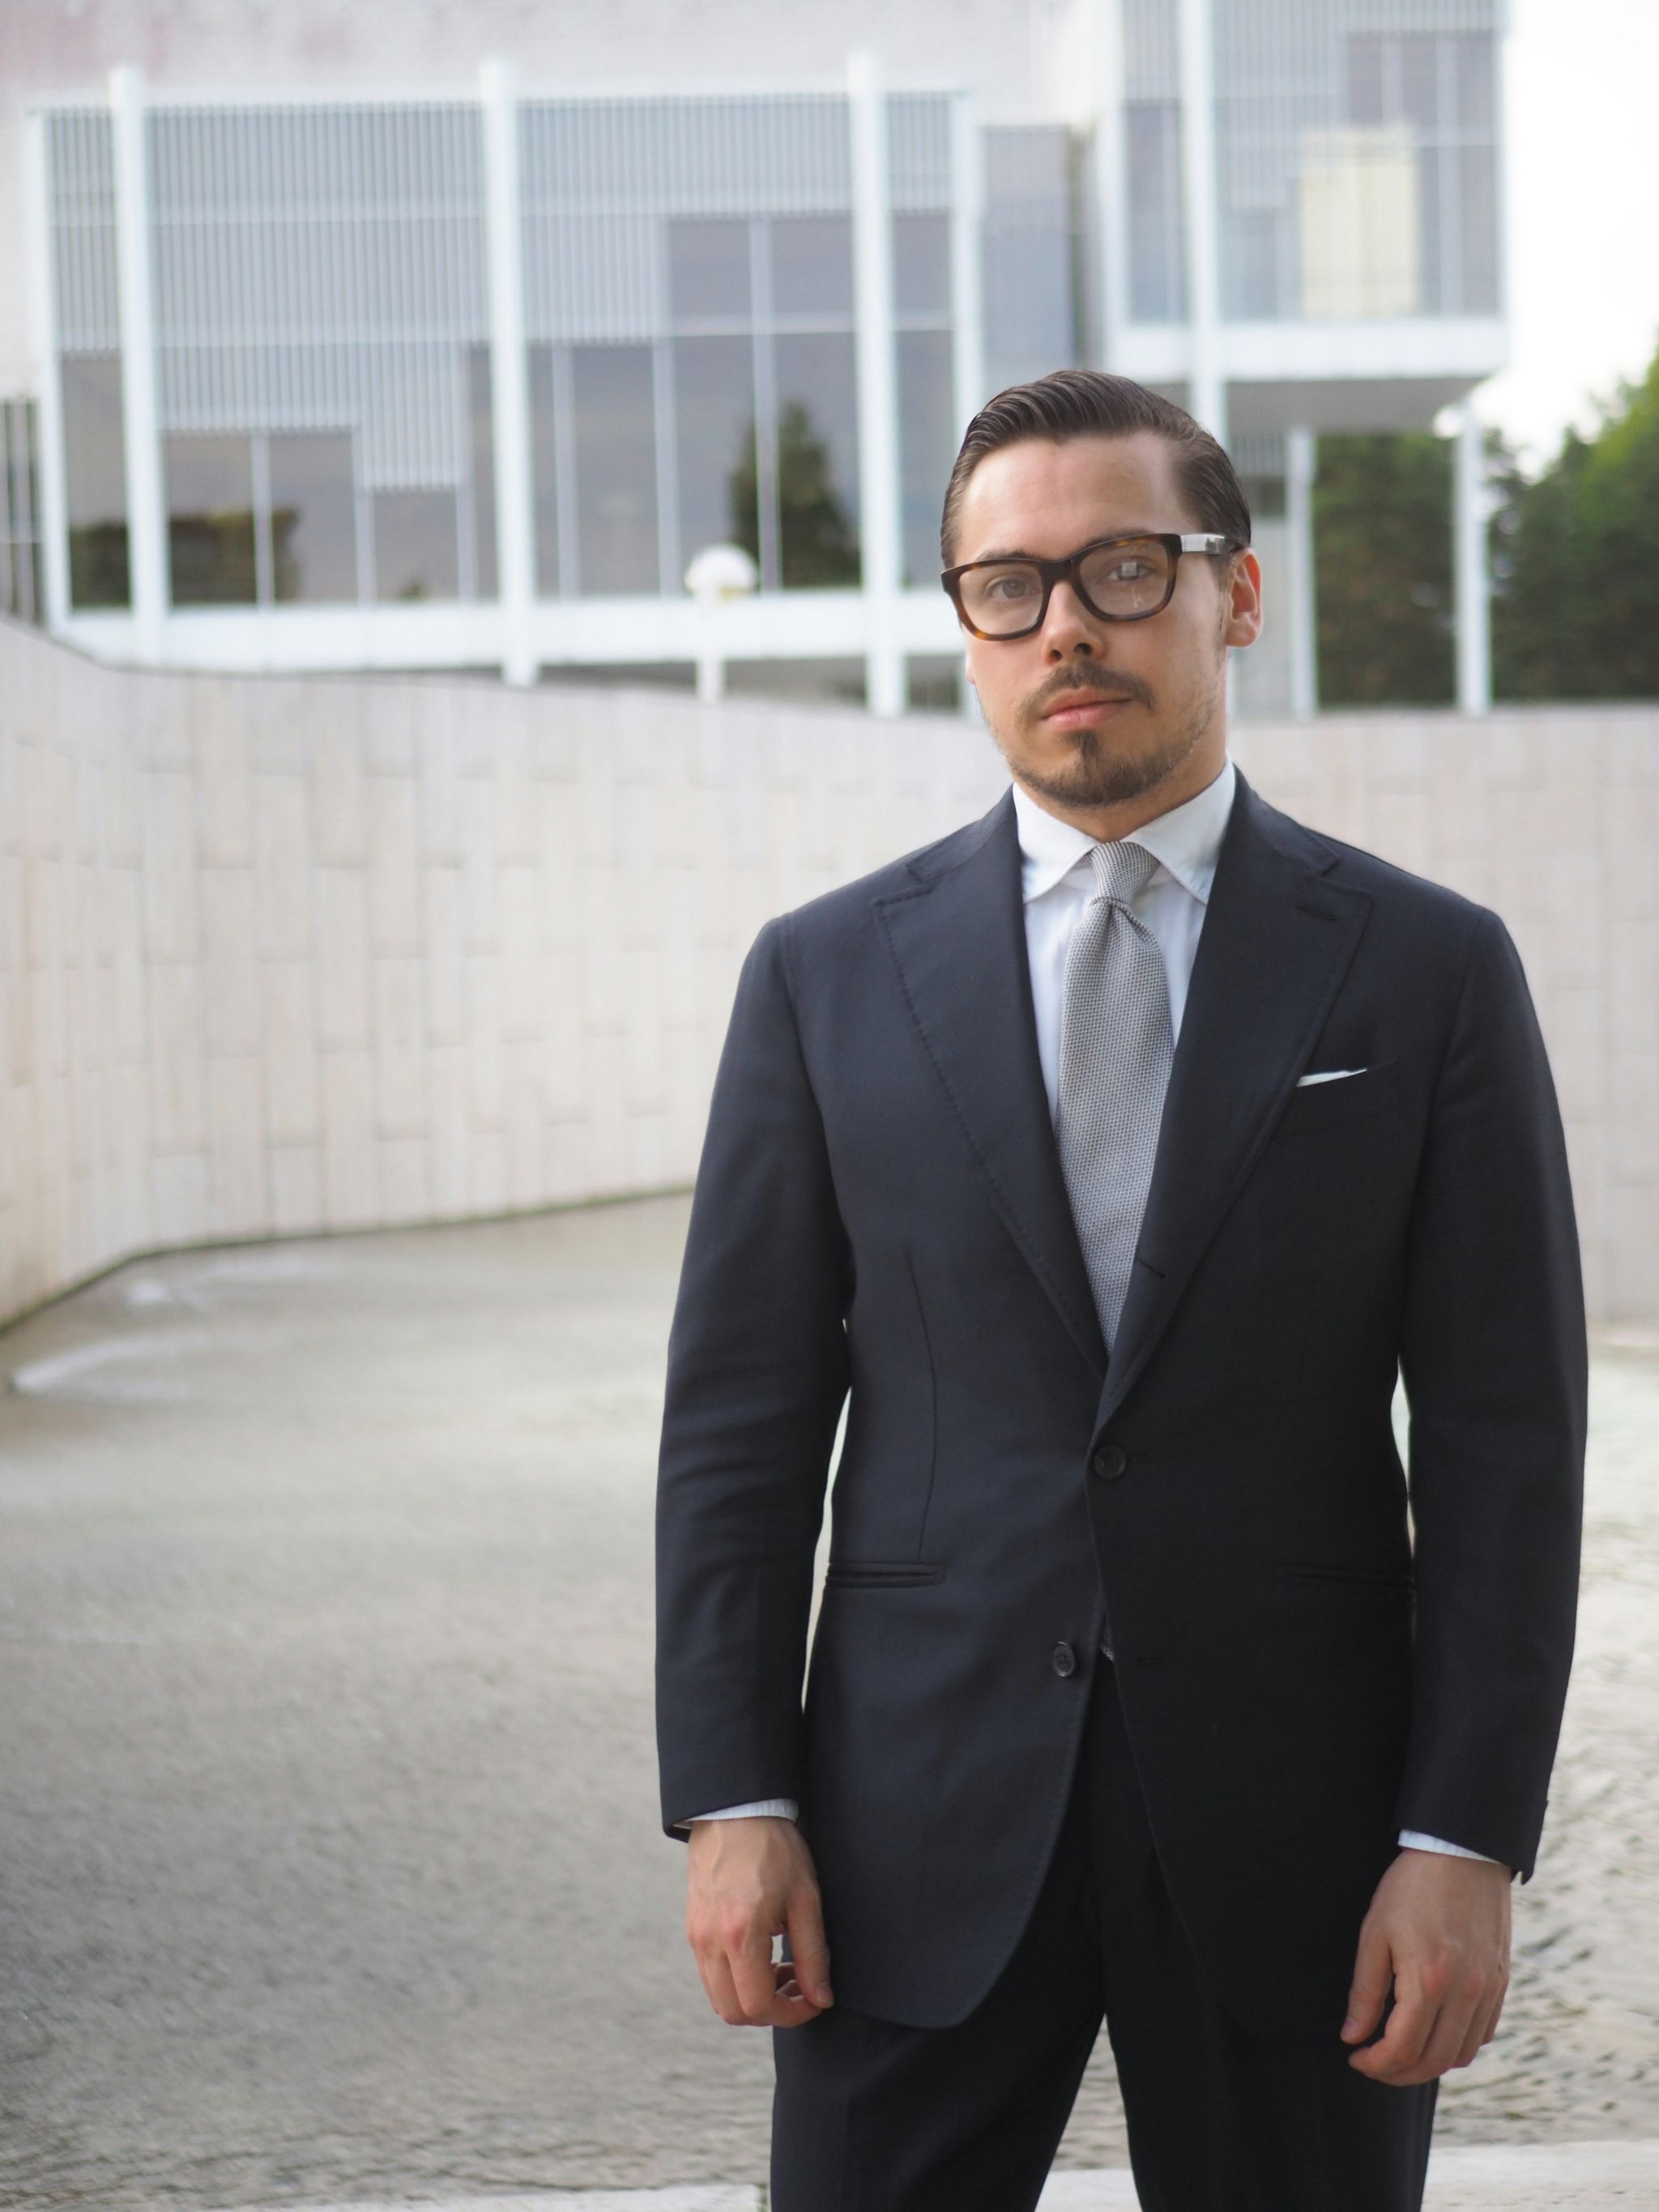 What to wear for wedding party - Blue suit with silver grenadine tie and white shirt.